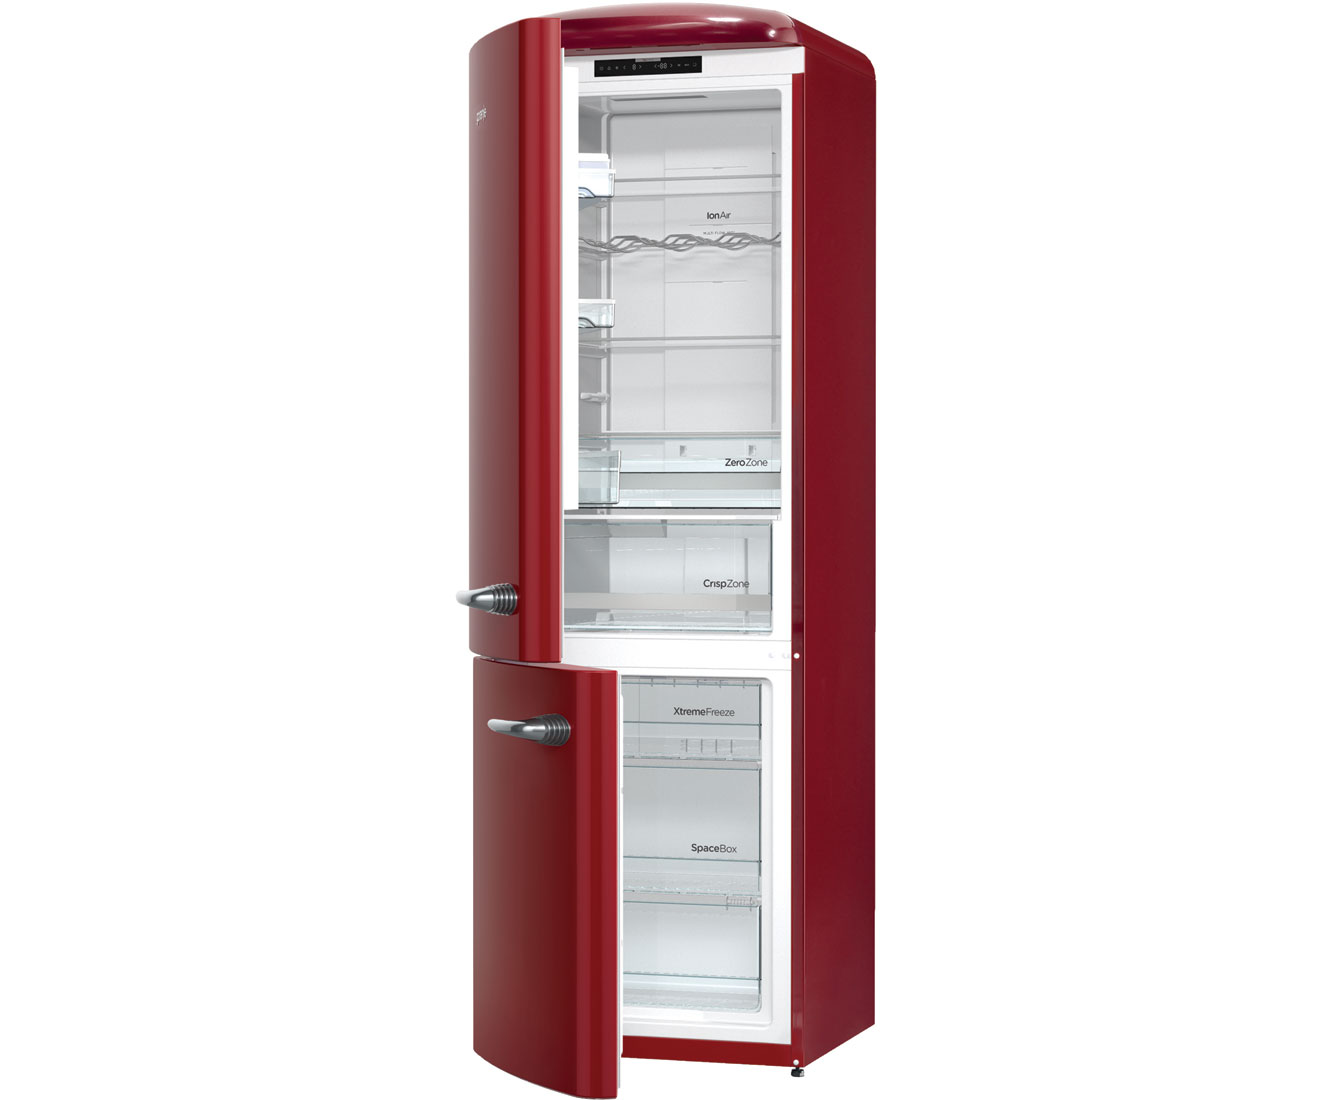 Retro Kühlschrank No Frost : Gorenje retro collection onrk 193 r l kühl gefrierkombination mit no